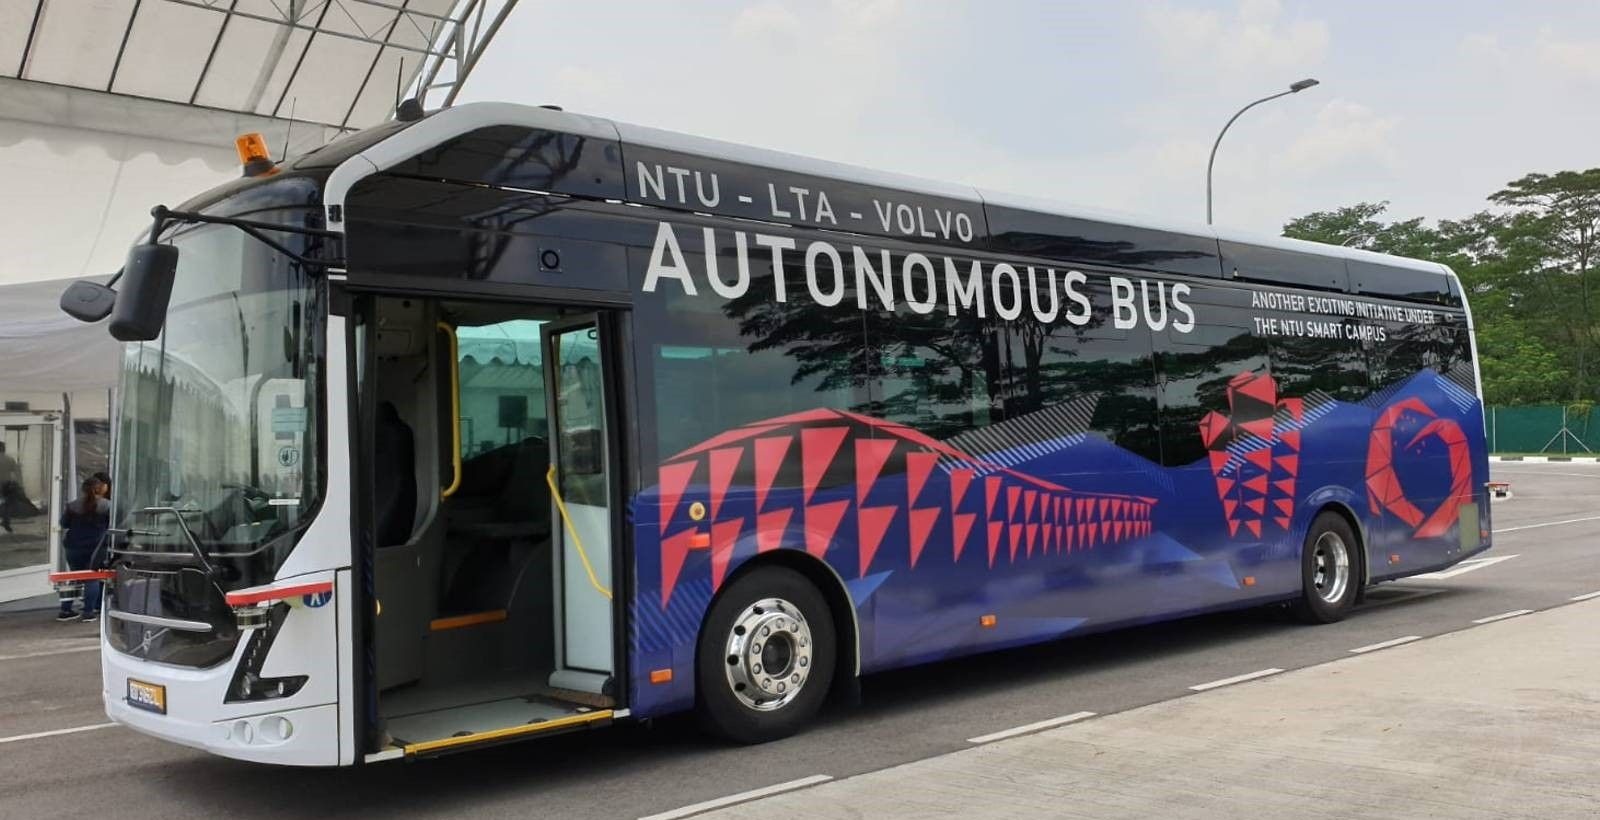 Singapore has started testing is autonomous buses for